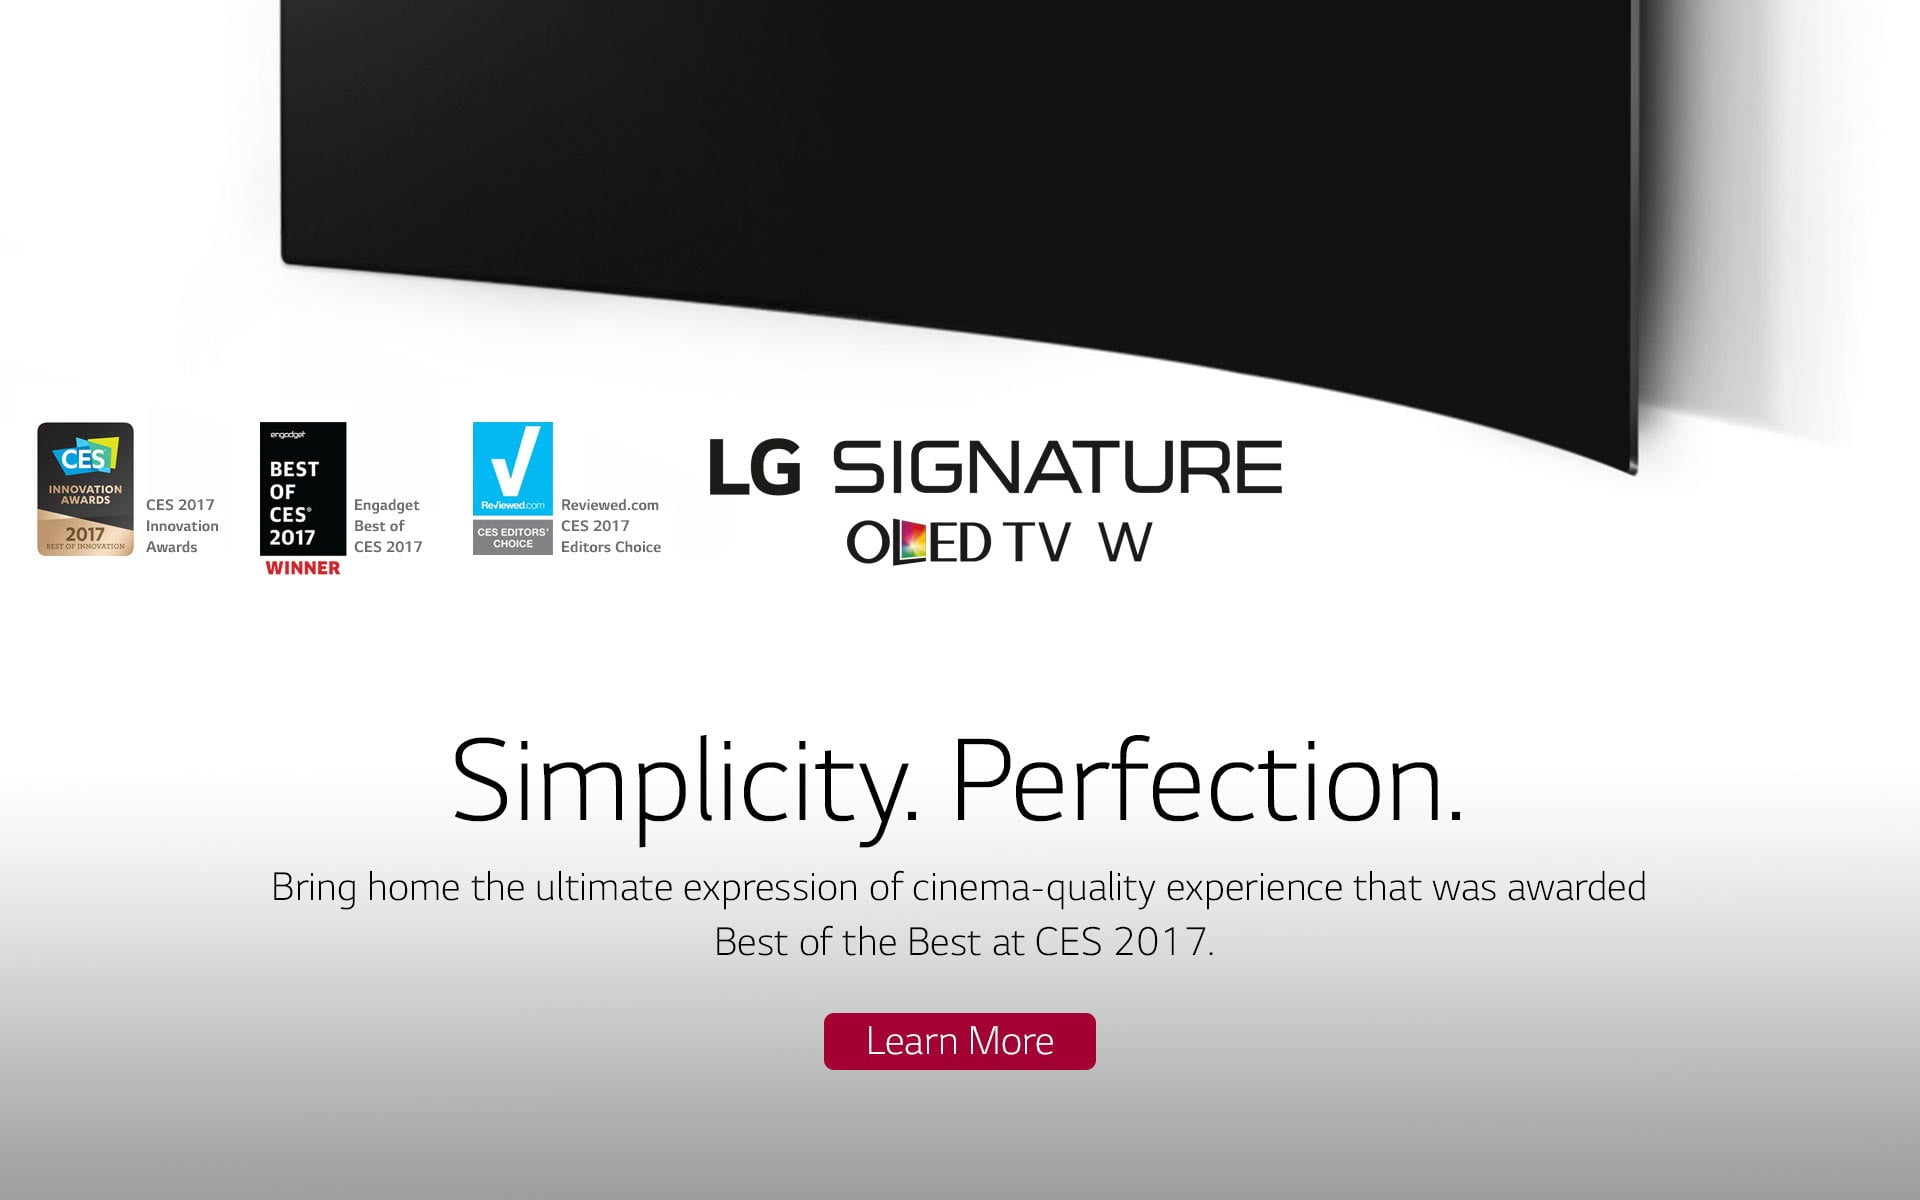 LG Picture